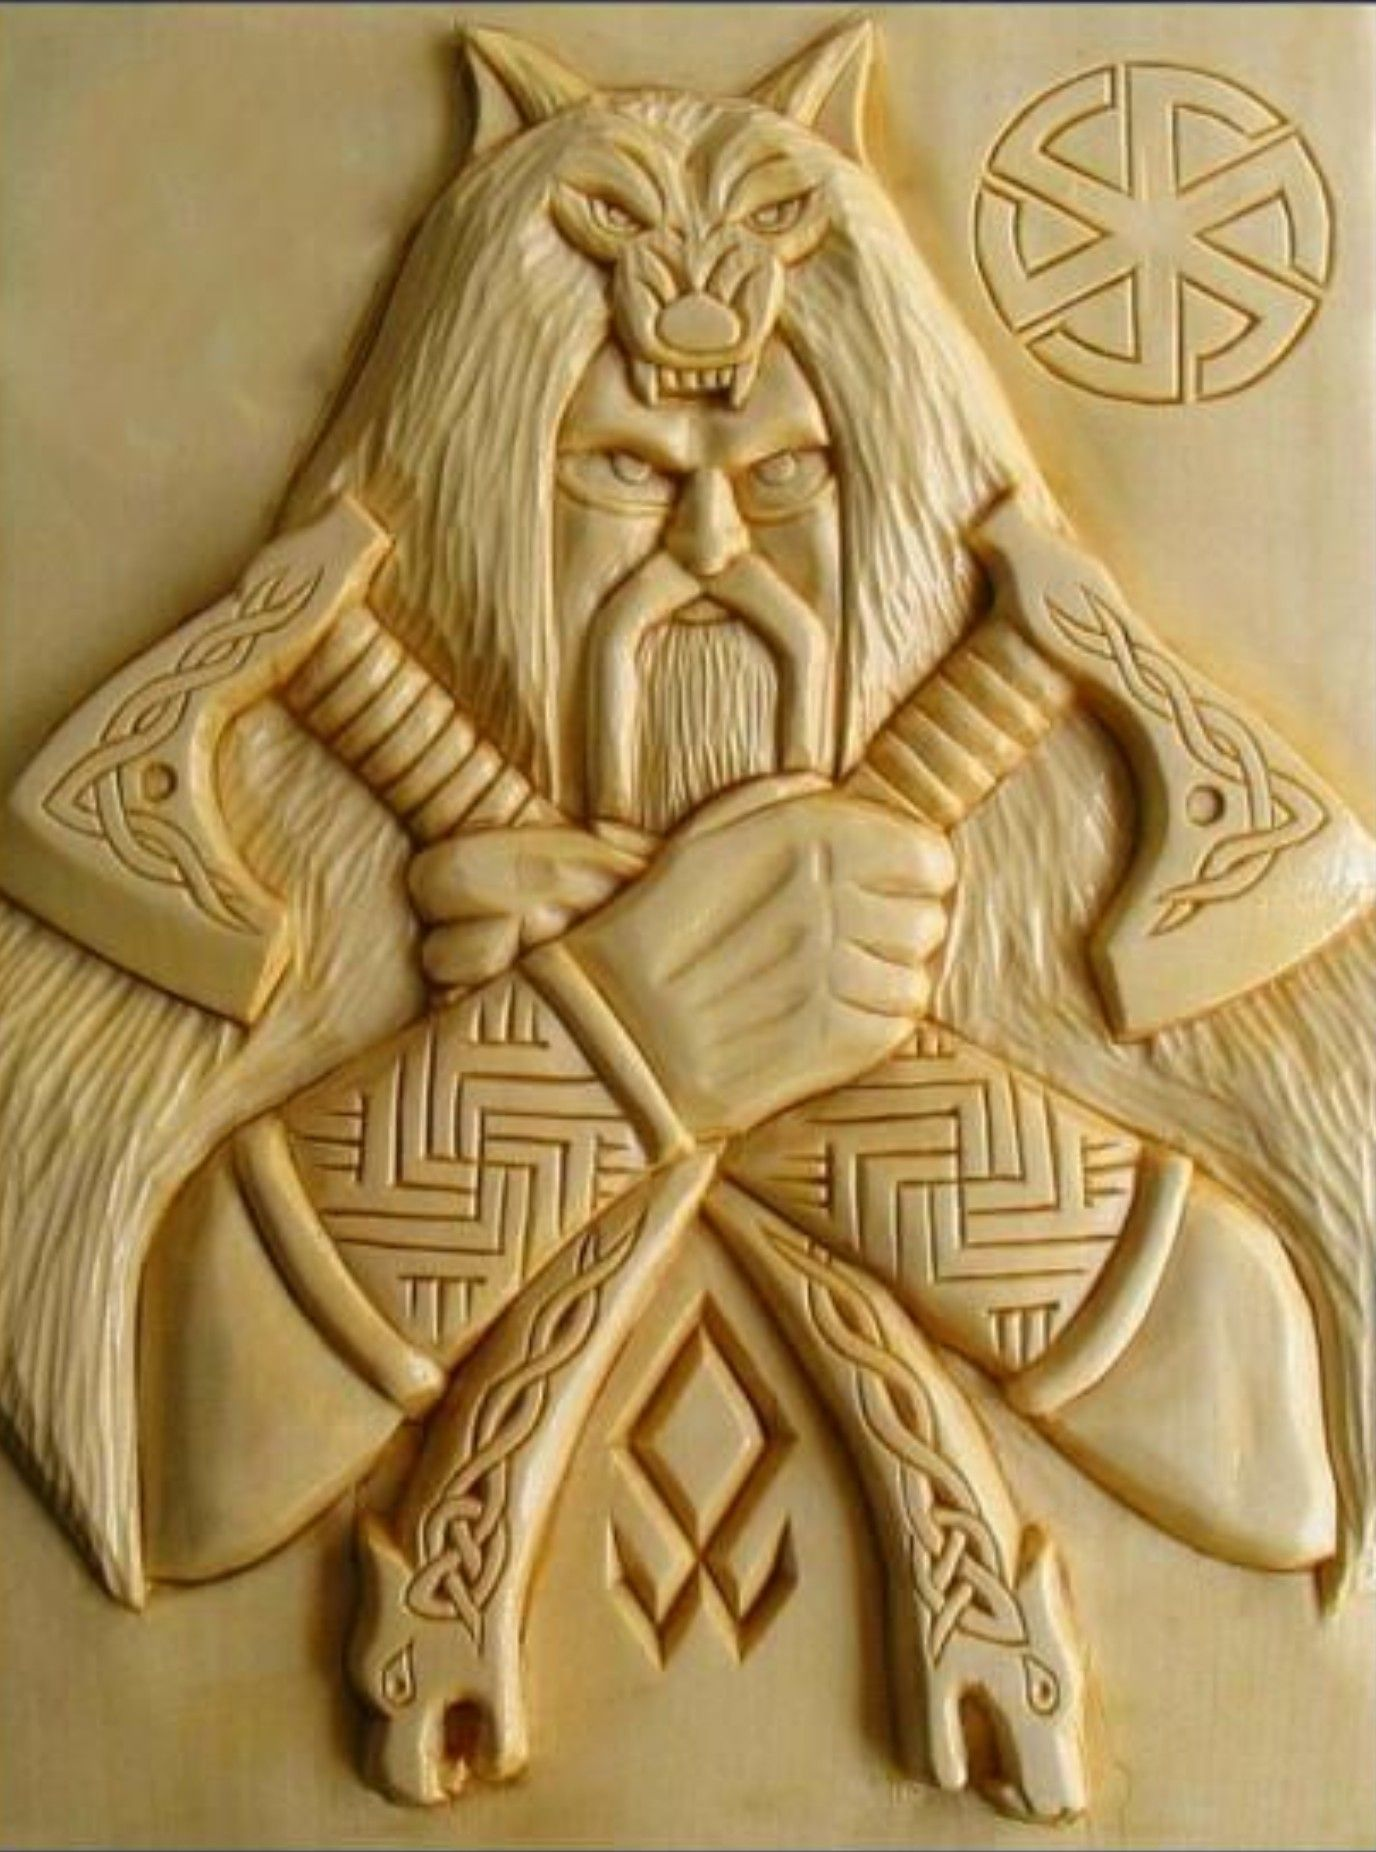 Pin by danny hammond on wood carving wood crafts chip carving